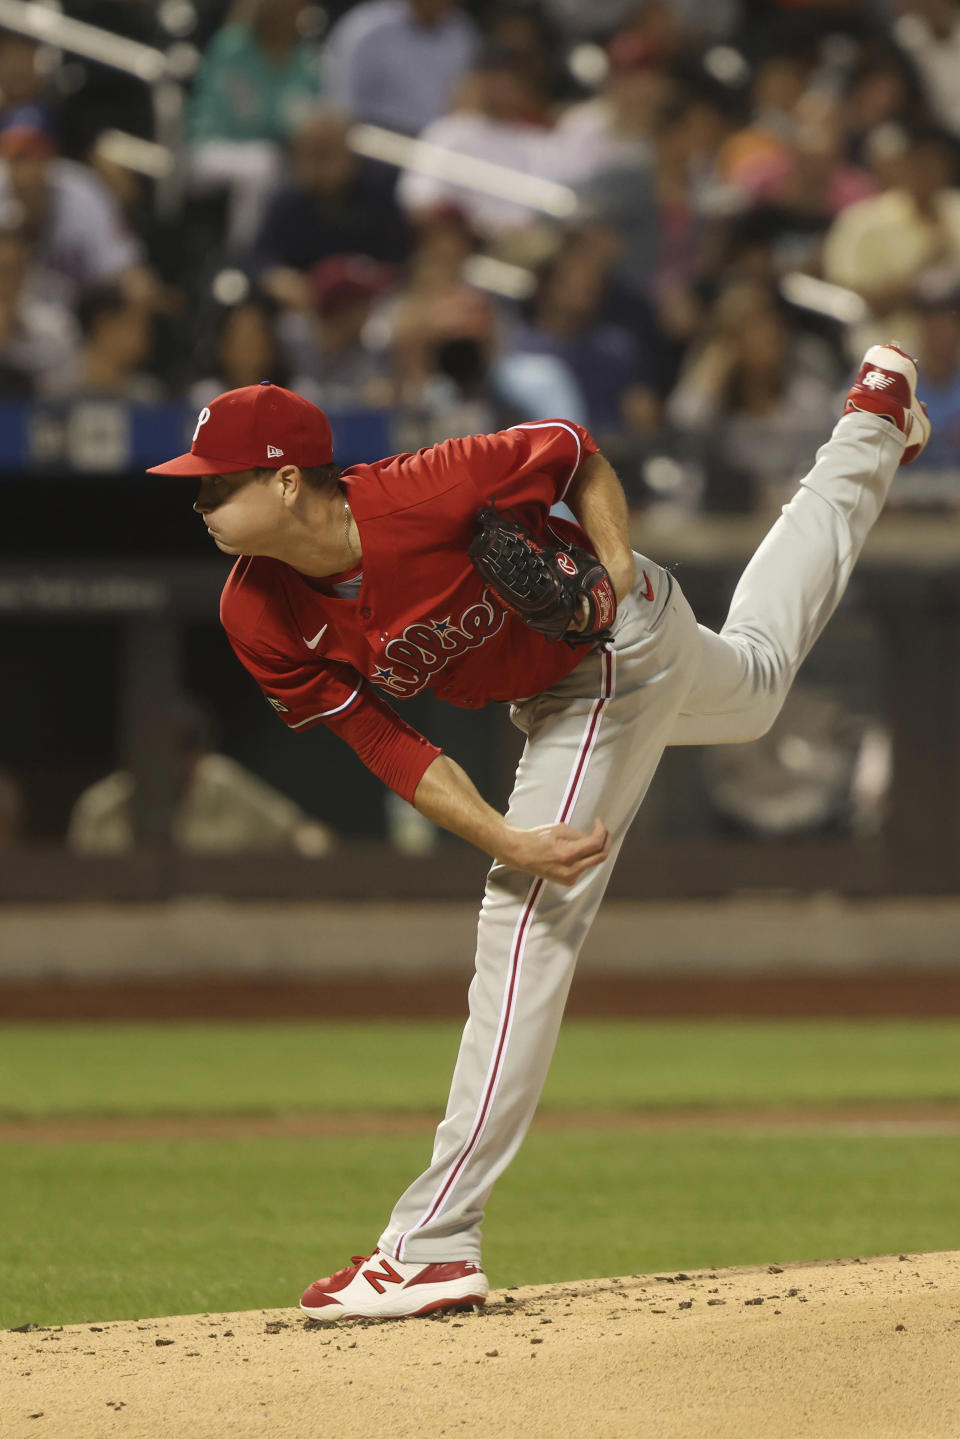 Philadelphia Phillies' Kyle Gibson pitches during the first inning of a baseball game against the New York Mets, Sunday, Sept. 19, 2021, in New York. (AP Photo/Jason DeCrow)